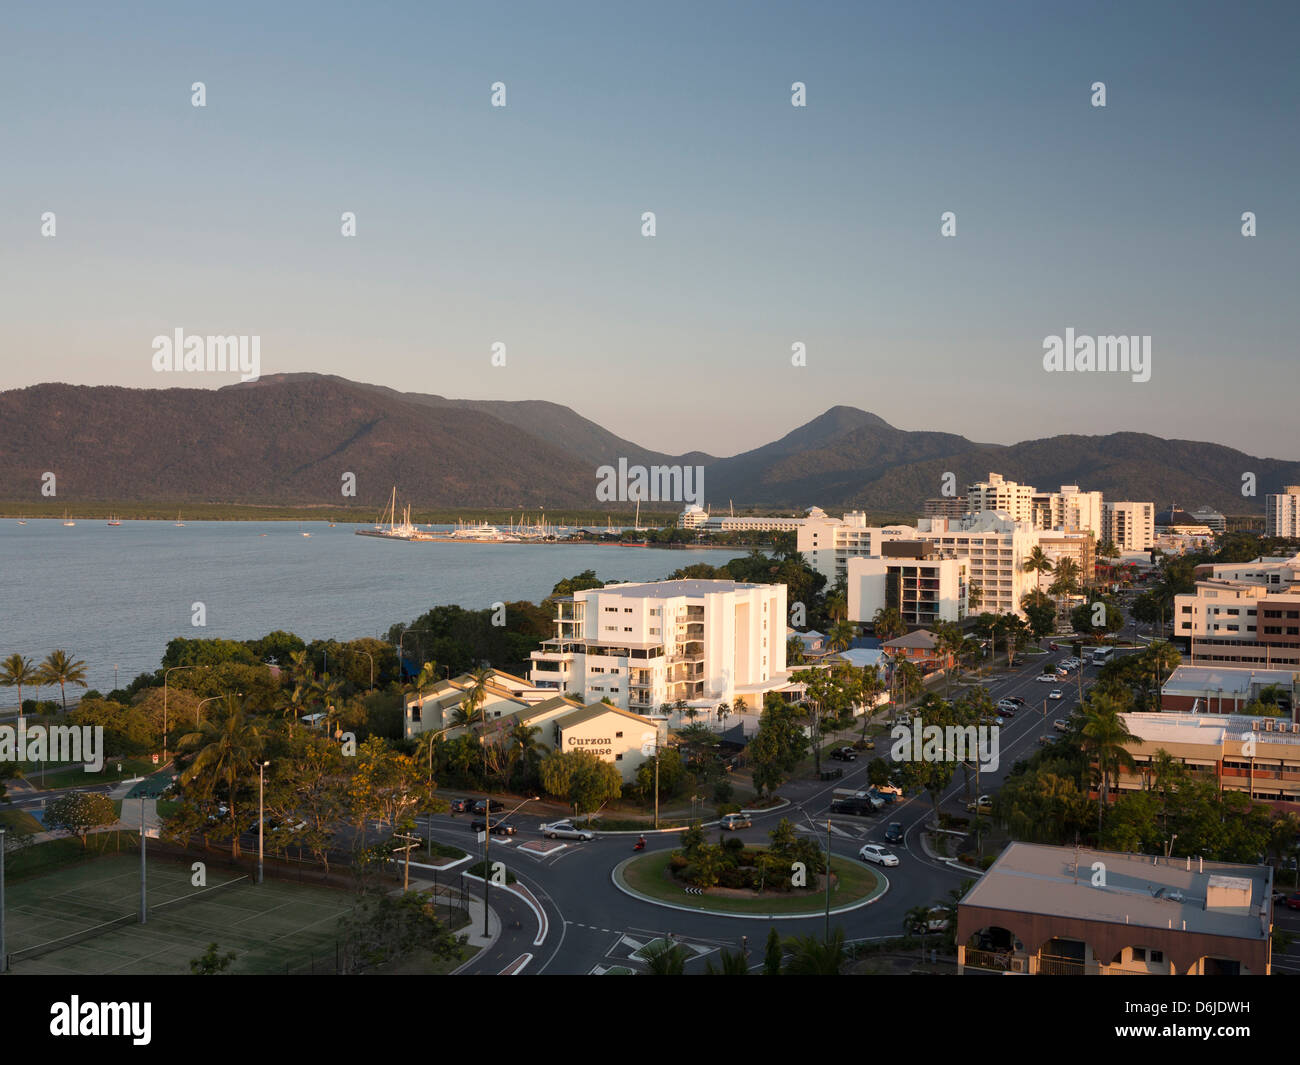 Waterfront and view towards city centre from south, Cairns, North Queensland, Australia, Pacific Stock Photo